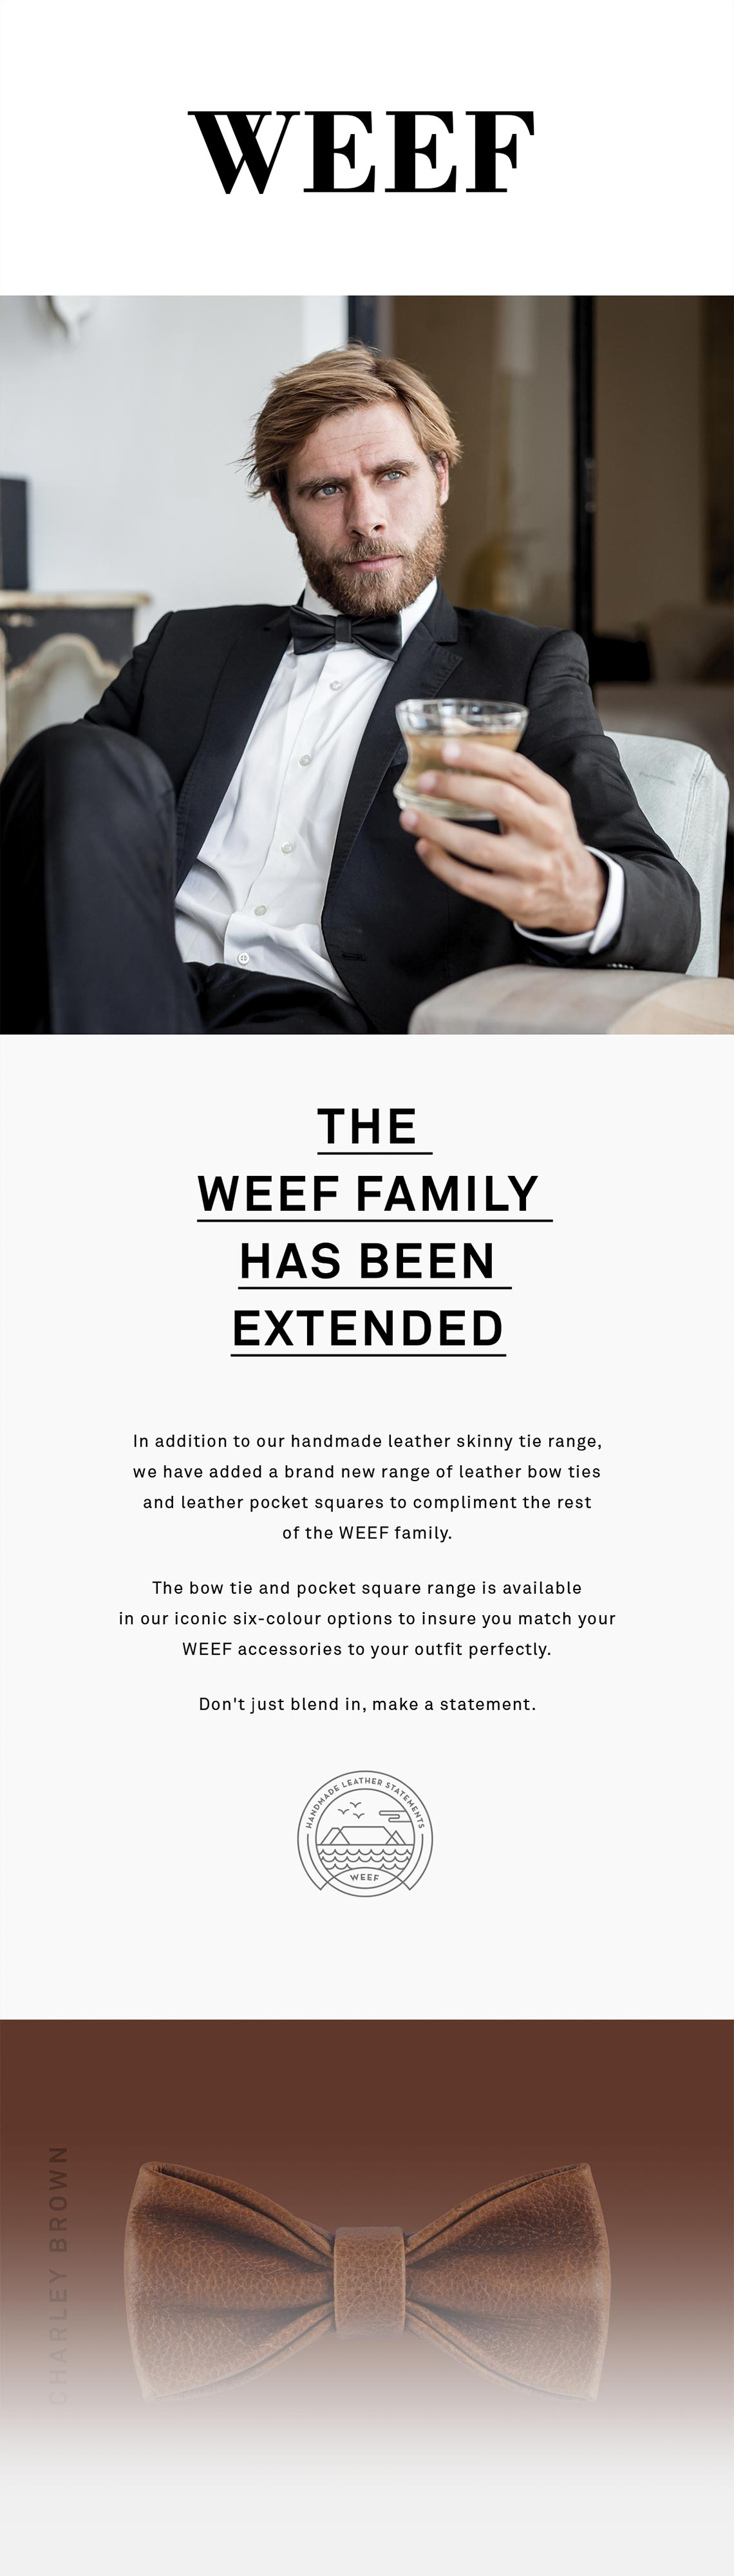 WEEF-Newsletter-01